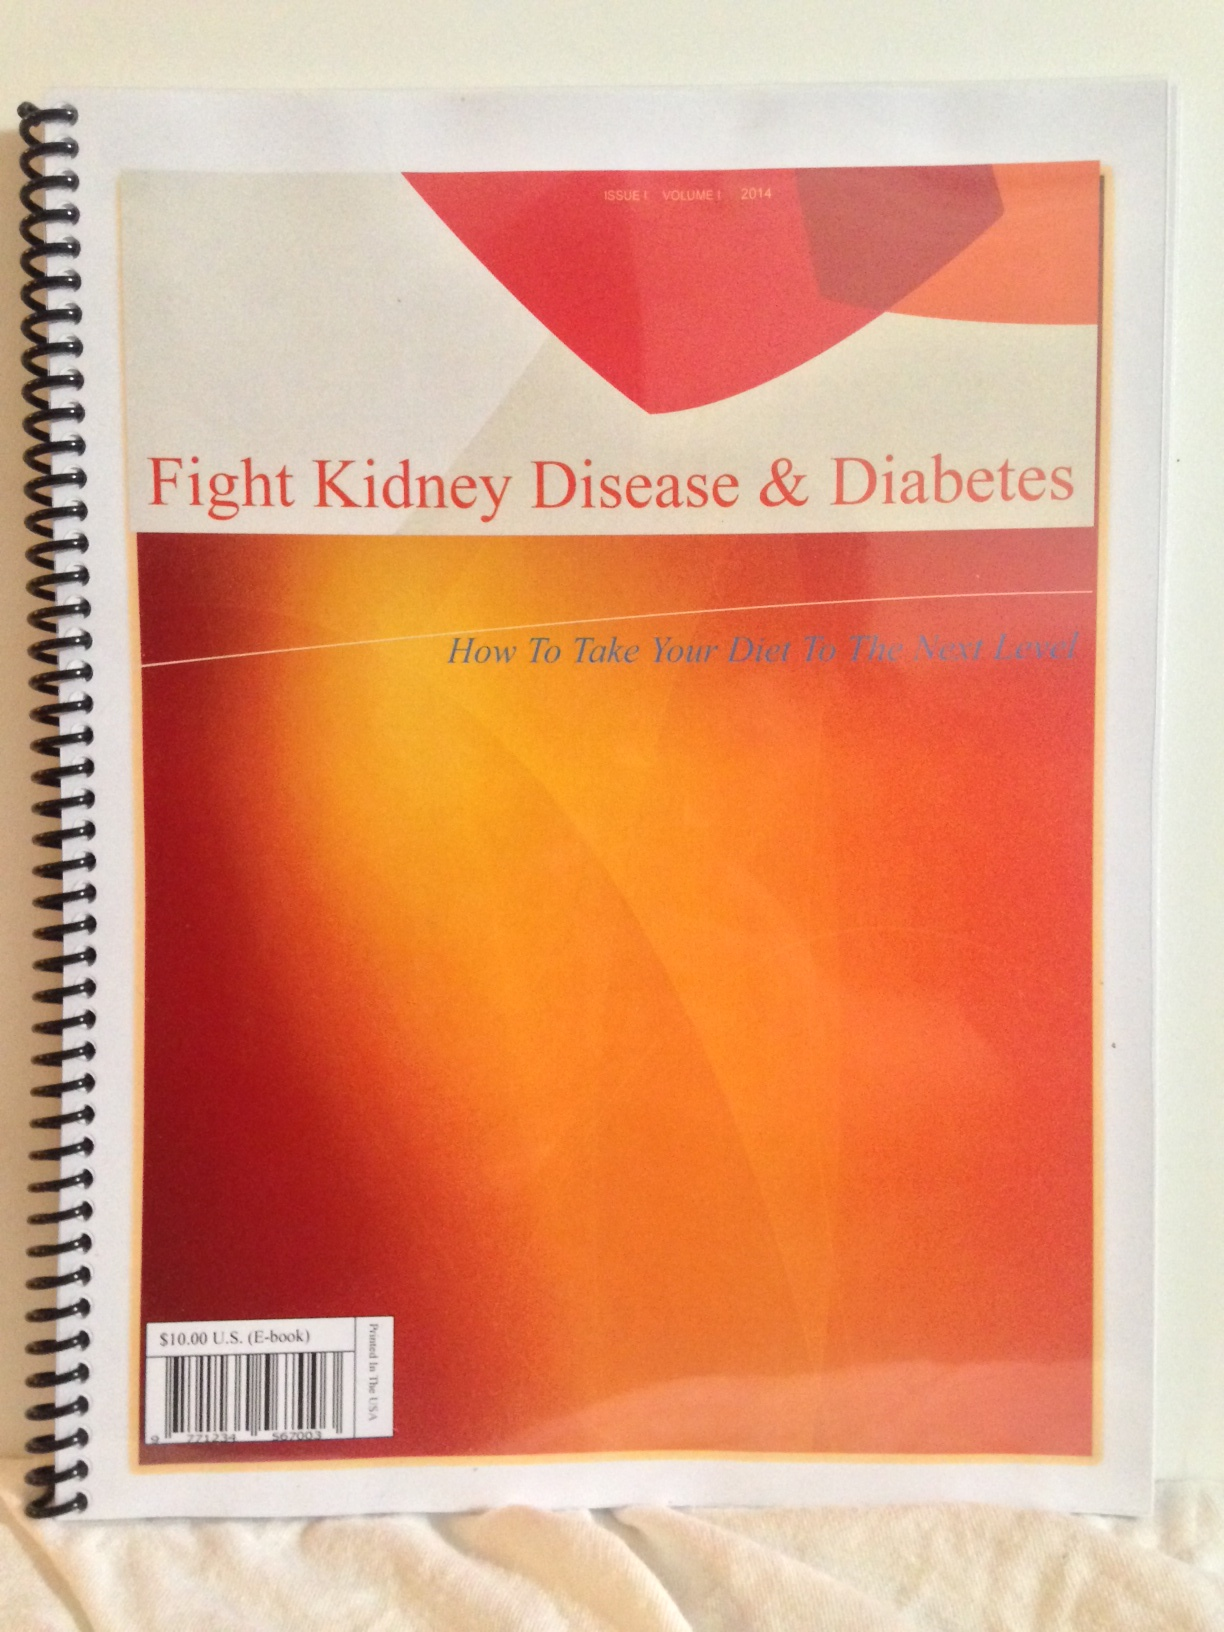 KIDNEYBUZZ.COM'S NEW DIET GUIDE FOR INDIVIDUALS SUFFERING WITH CHRONIC KIDNEY DISEASE AND DIABETES CONTAINS MANY QUICK, EASY-TO-MAKE, AND TRULY DELICIOUS RECIPES. YOU WILL ALSO GET CREATIVE LIFE MANAGEMENT TIPS WHILE SUPPORTING THE DAILY TAILORED NEWS COVERAGE BY PURCHASING THIS VOLUME FOR ONLY $10.00.  CLICK HERE.